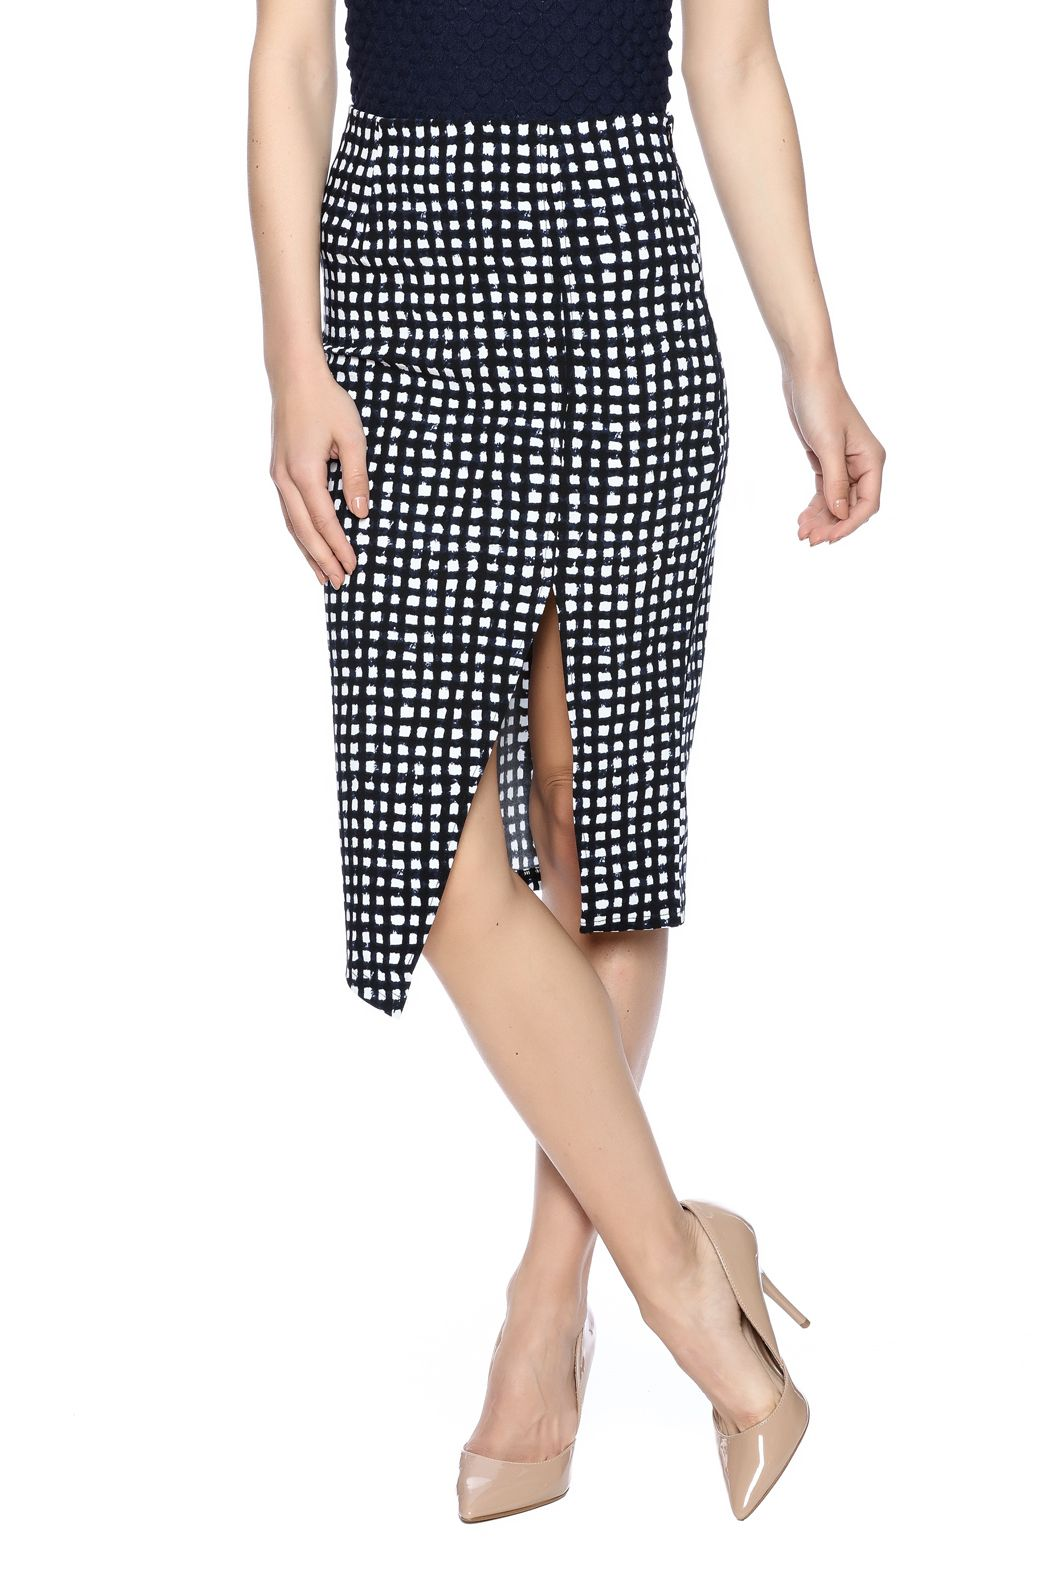 Black and navy geometric printed pencil skirt with side slit. Stretch fabric.   Pencil Me In Skirt by Lucy Paris. Clothing - Skirts - Pencil Colorado